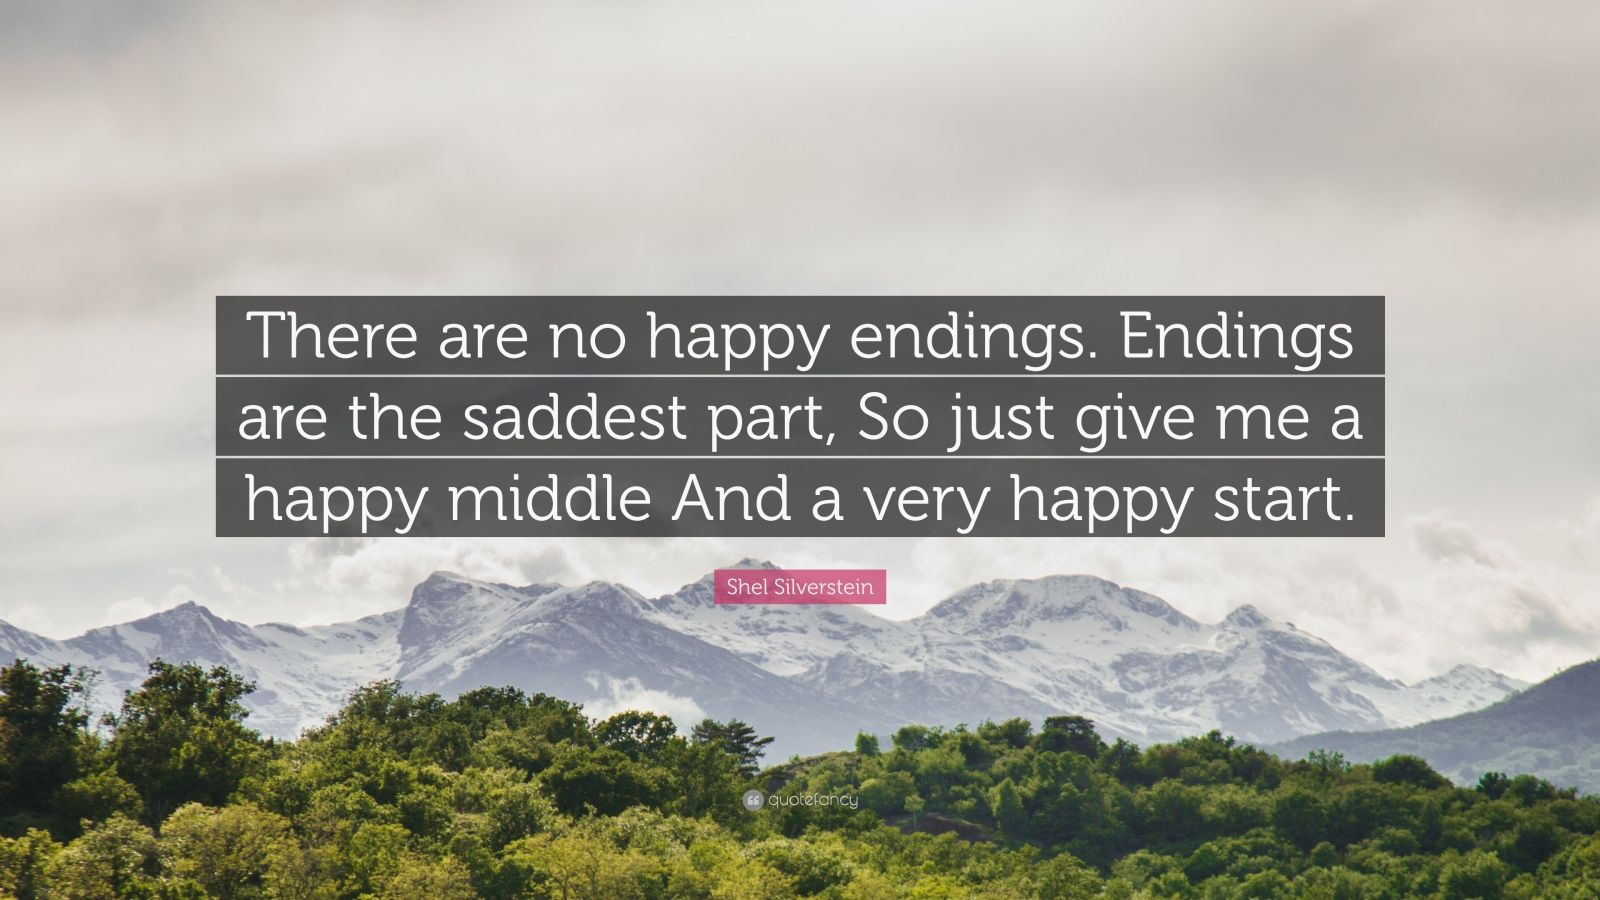 """Shel Silverstein Quote: """"There are no happy endings. Endings are the saddest part, So just give me a happy middle And a very happy start."""""""